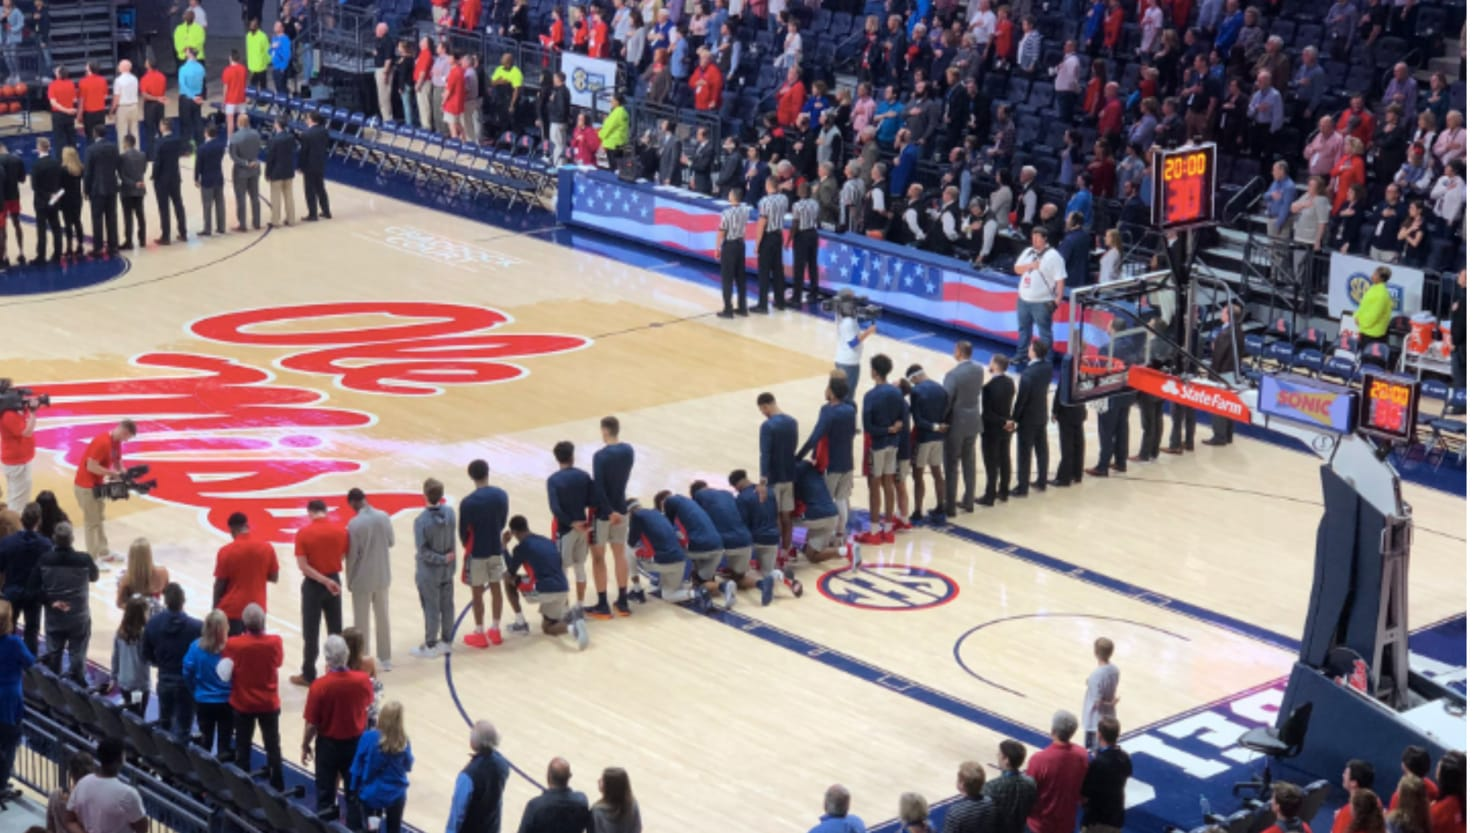 Ole Miss Basketball Players Kneel During National Anthem in Protest to Nearby Pro-Confederacy Rally